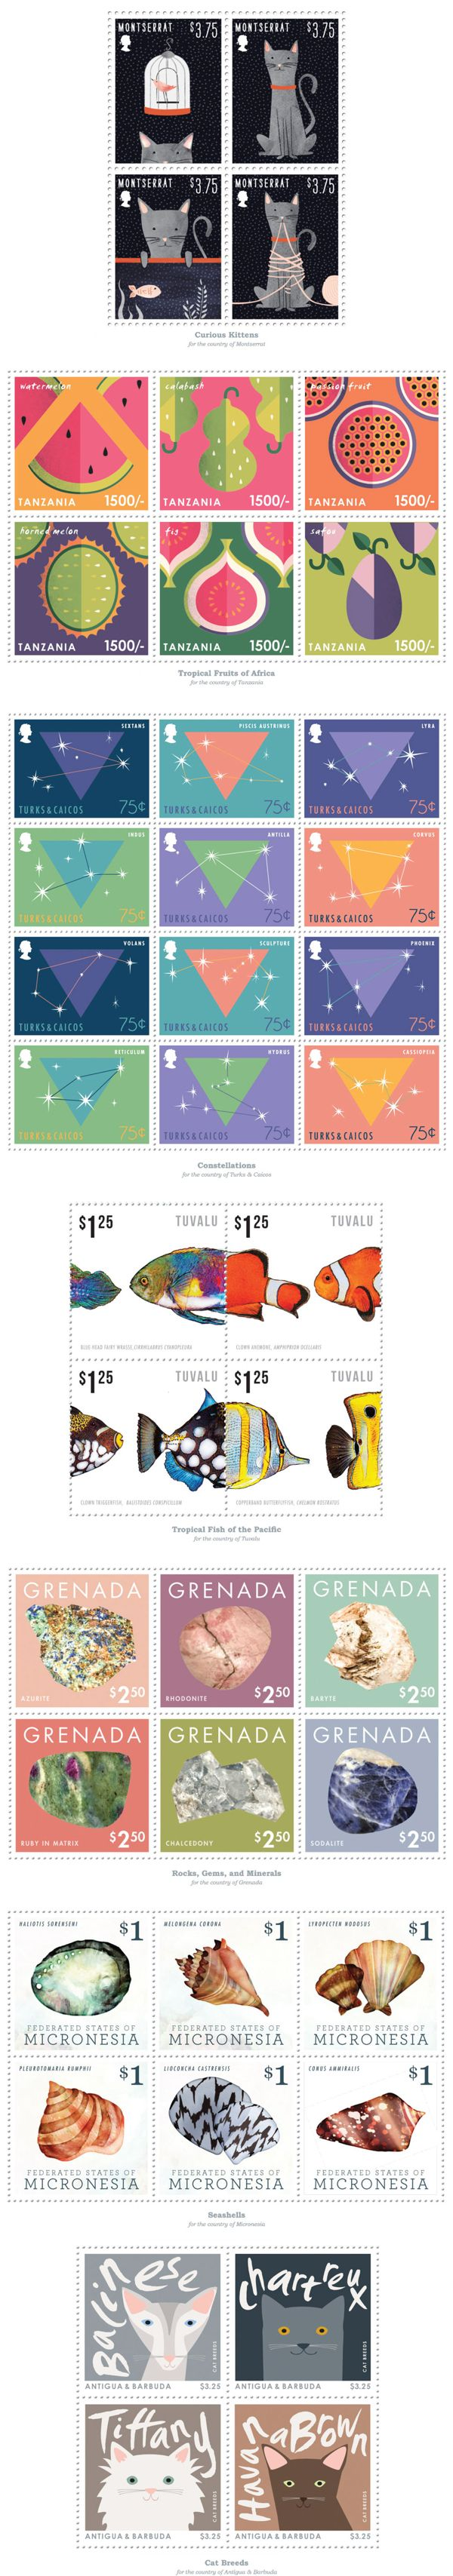 Postage Stamps on Behance